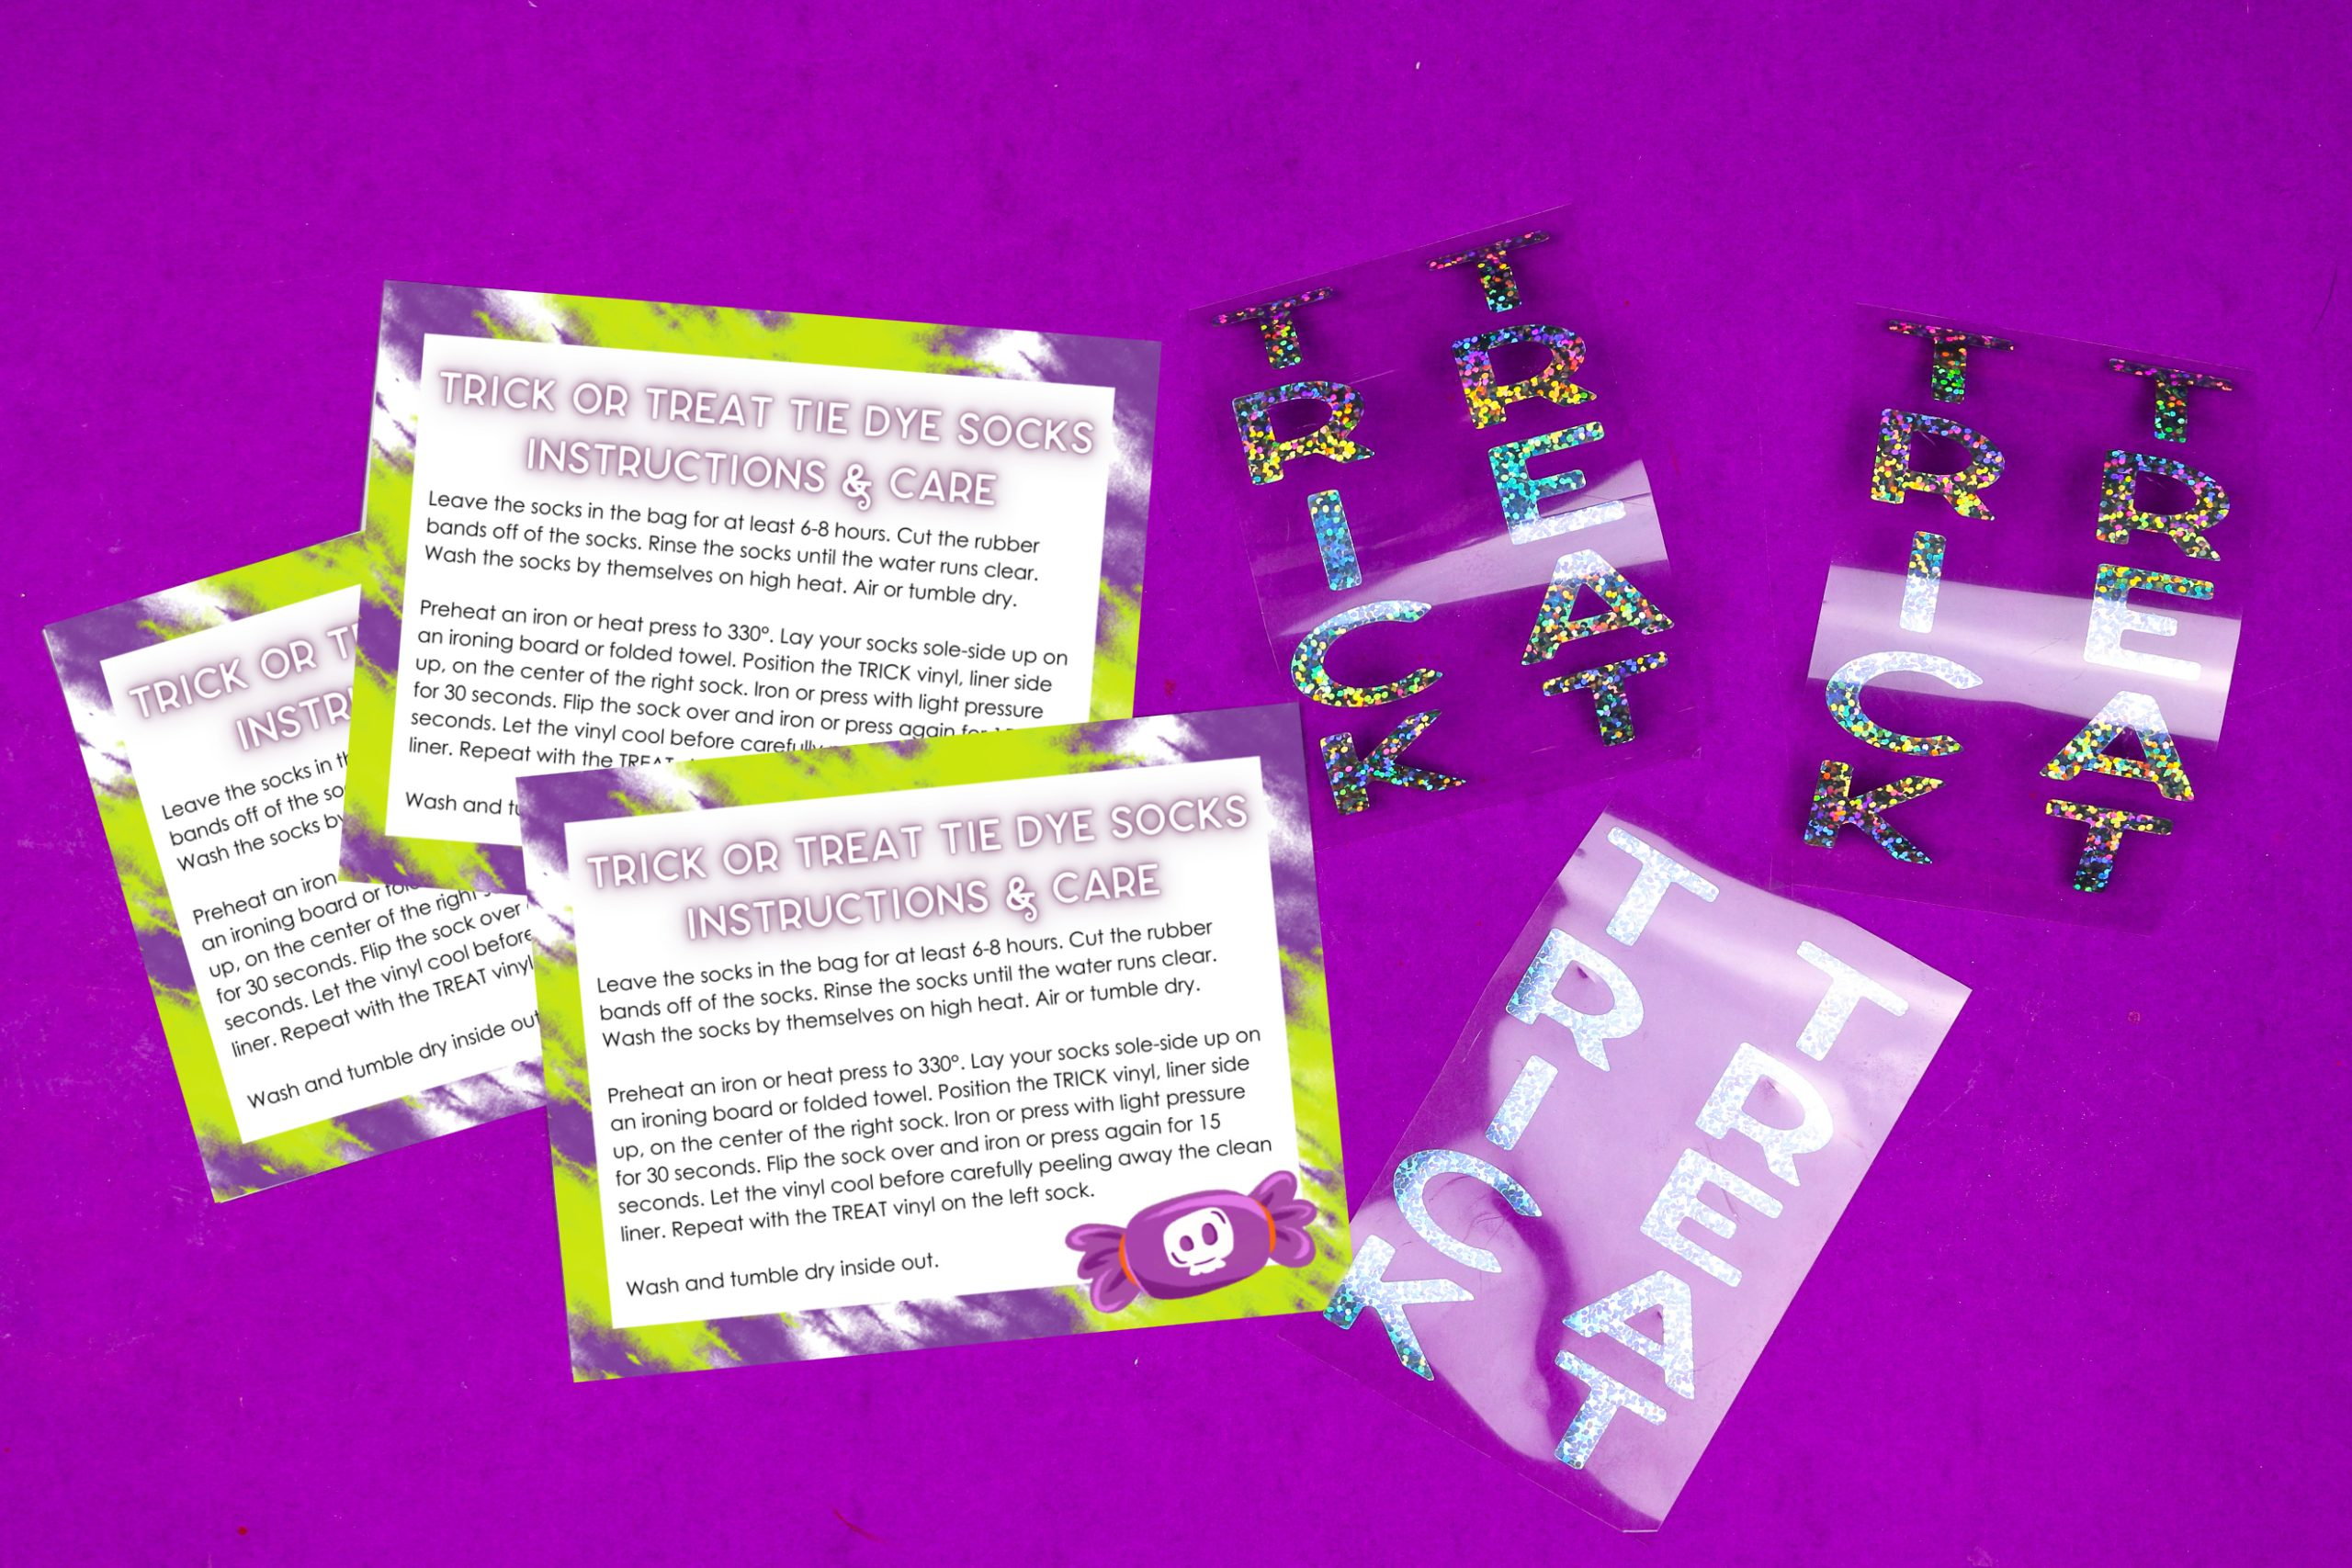 tie dye instruction cards and weeded sparkle iron on vinyl on a purple background